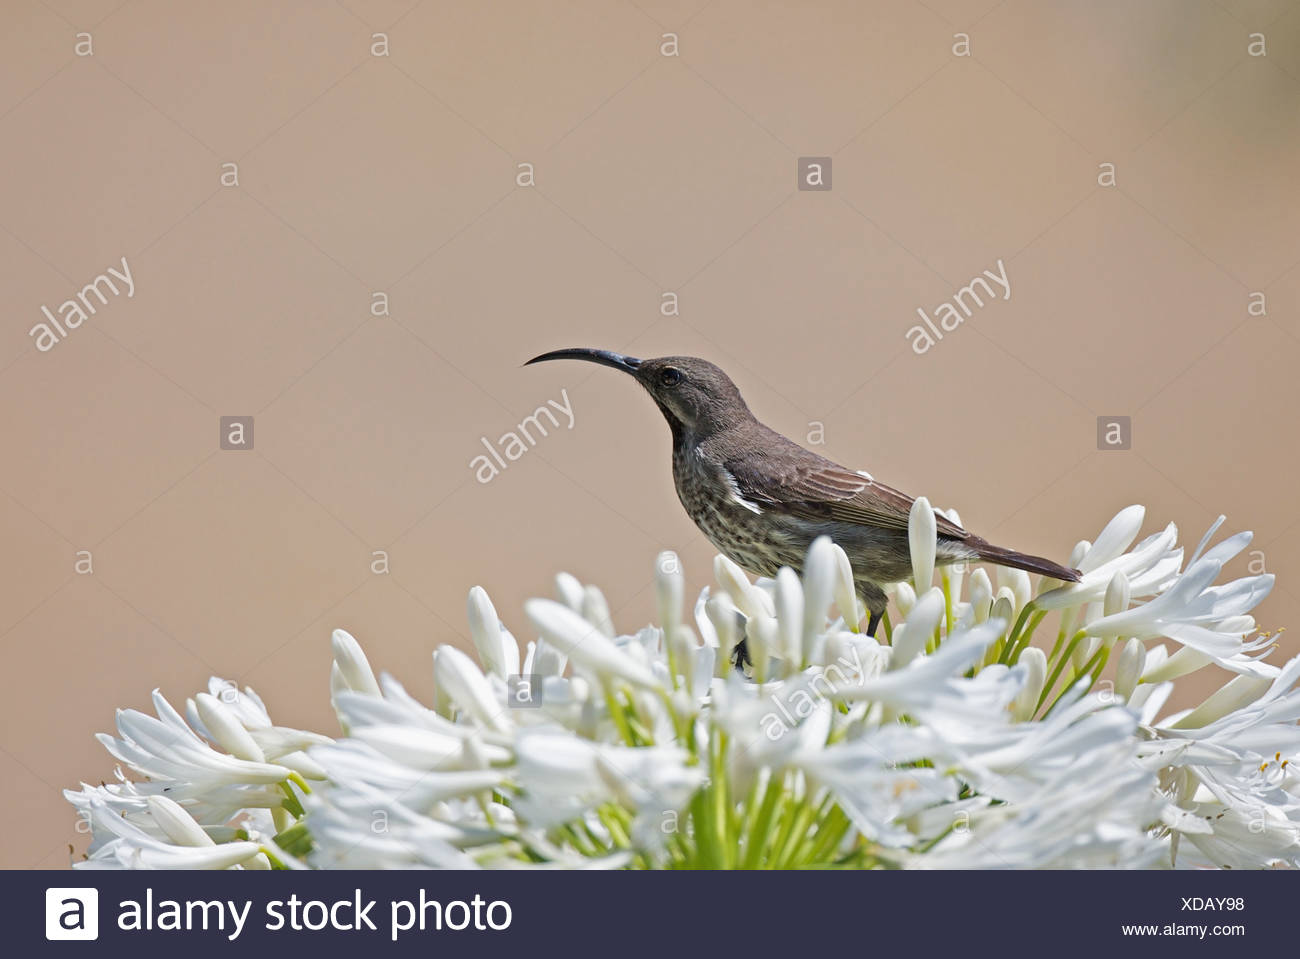 Female Greater Double-collared Sunbird Cinnyris afer feeding on Agapanthus flower in Outeniqua Mountains Western Cape Province - Stock Image